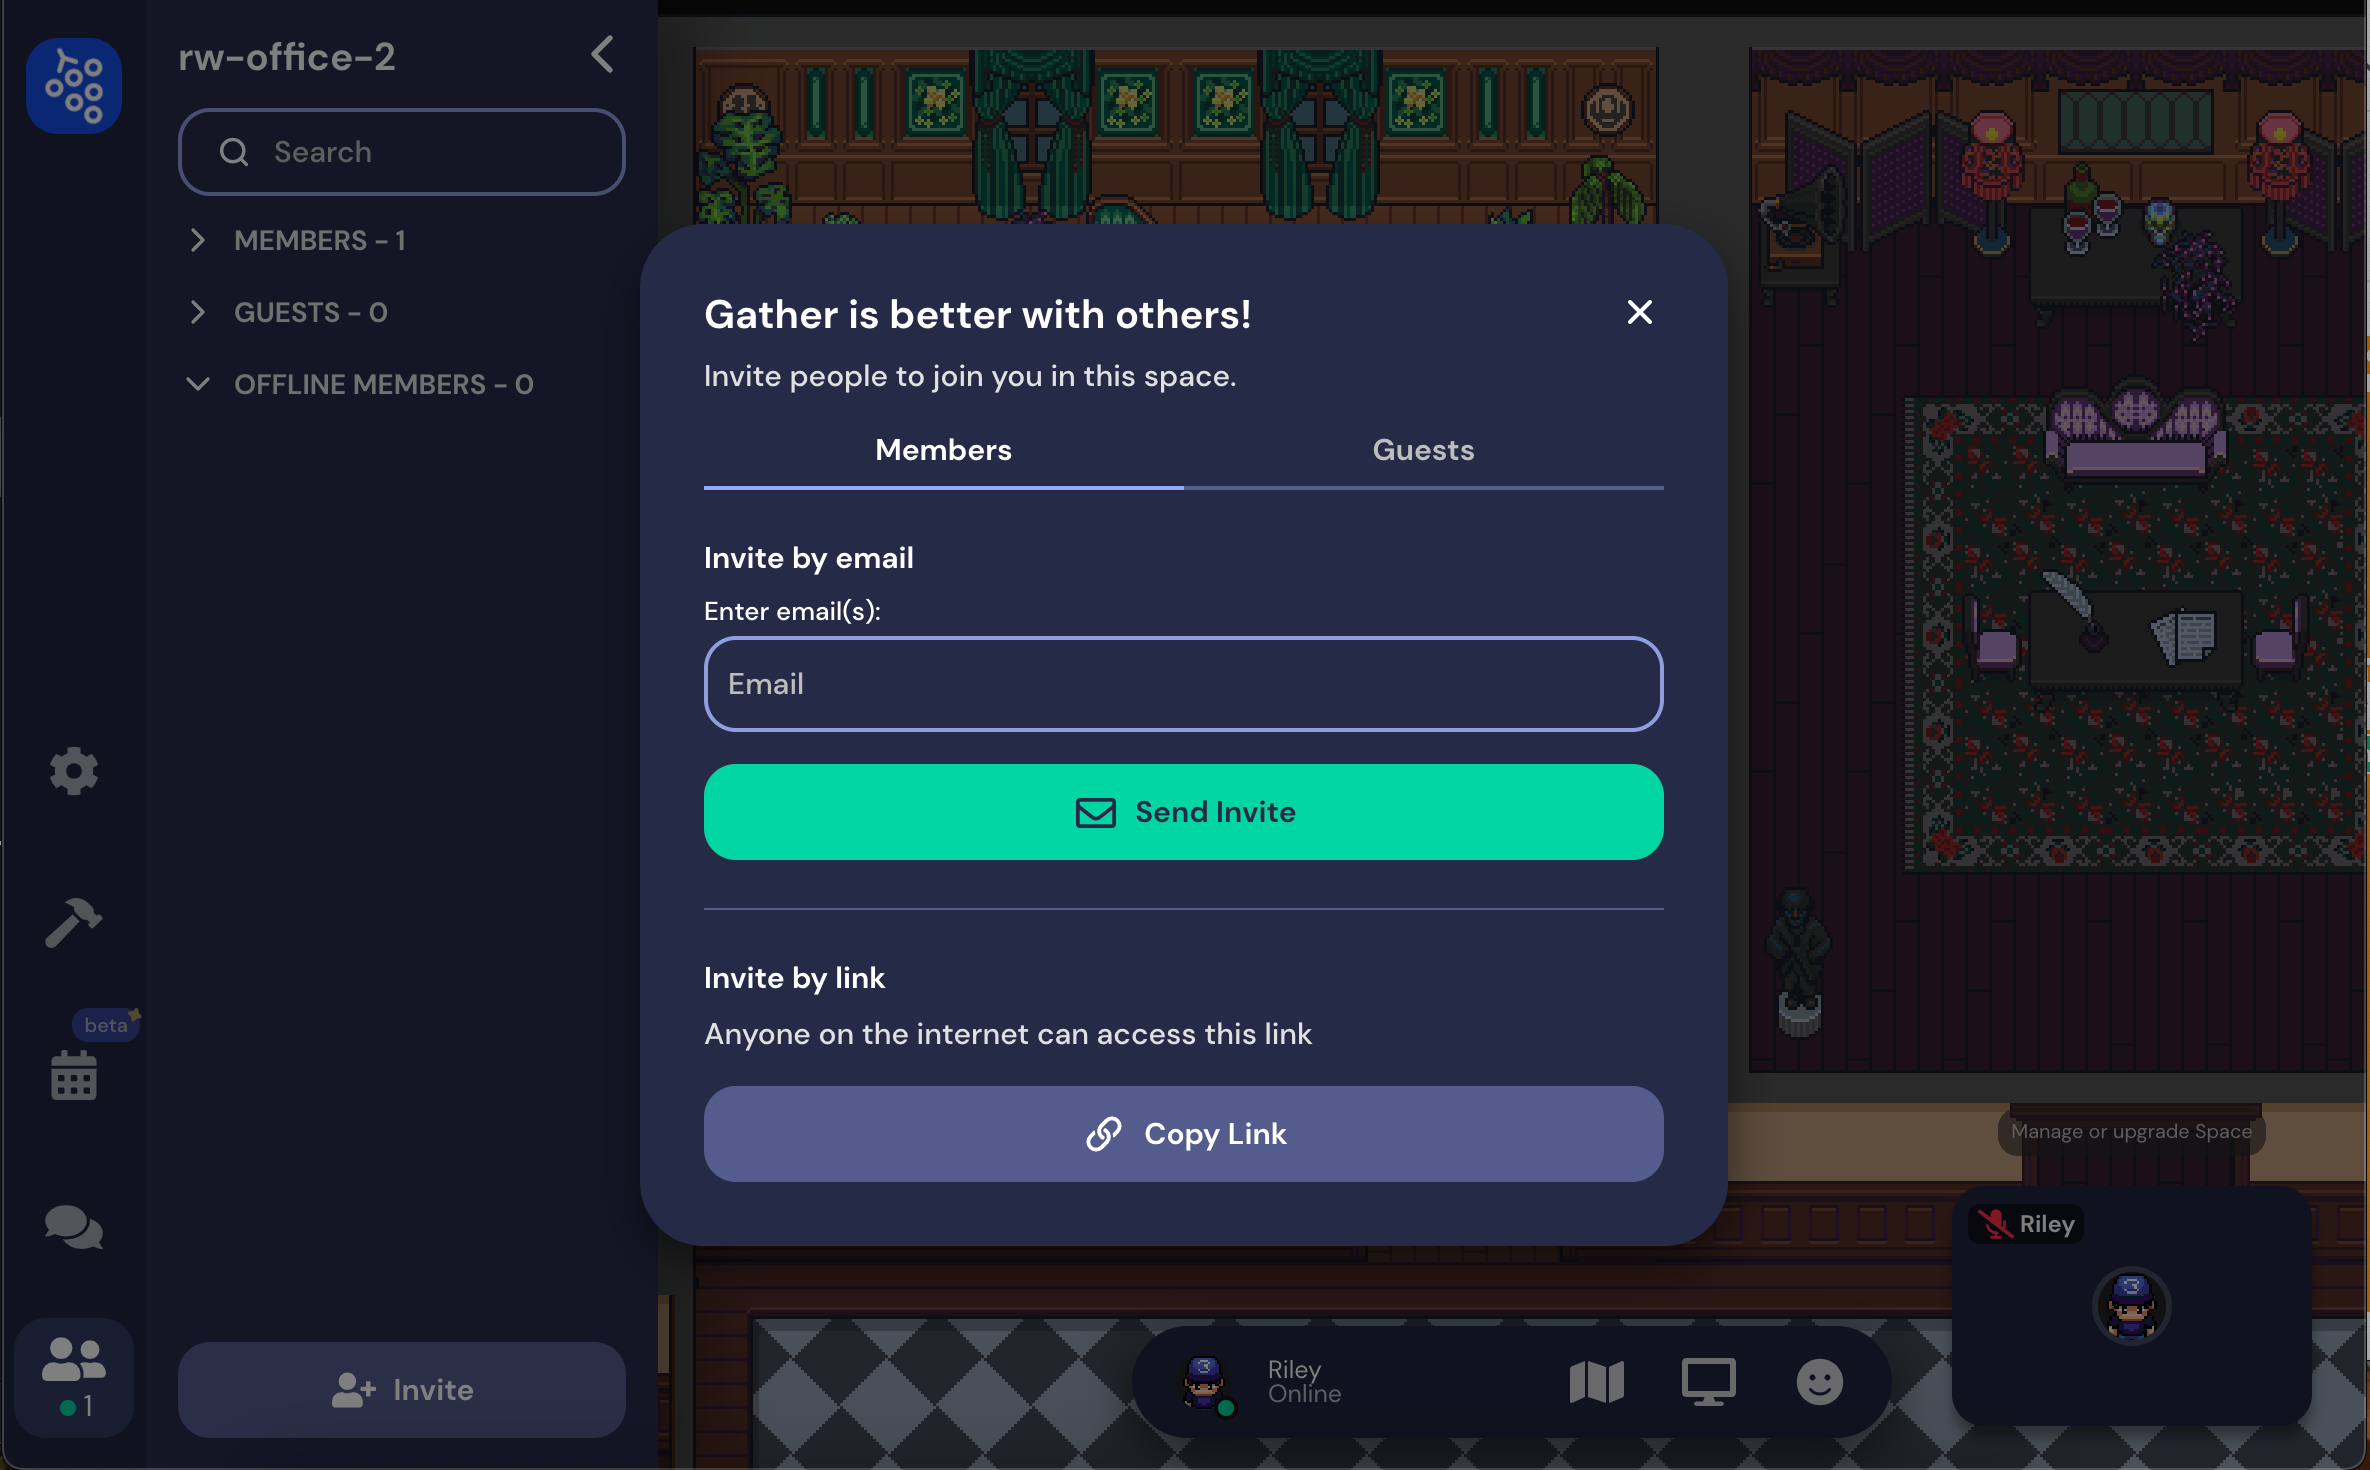 A view of the updated remote office invitation modal, which is split into two tabs: Members and Guests. You can invite up to 50 members by email or copy and paste the link to your Space. You can also create a link with an expiration date on the Guests tab.